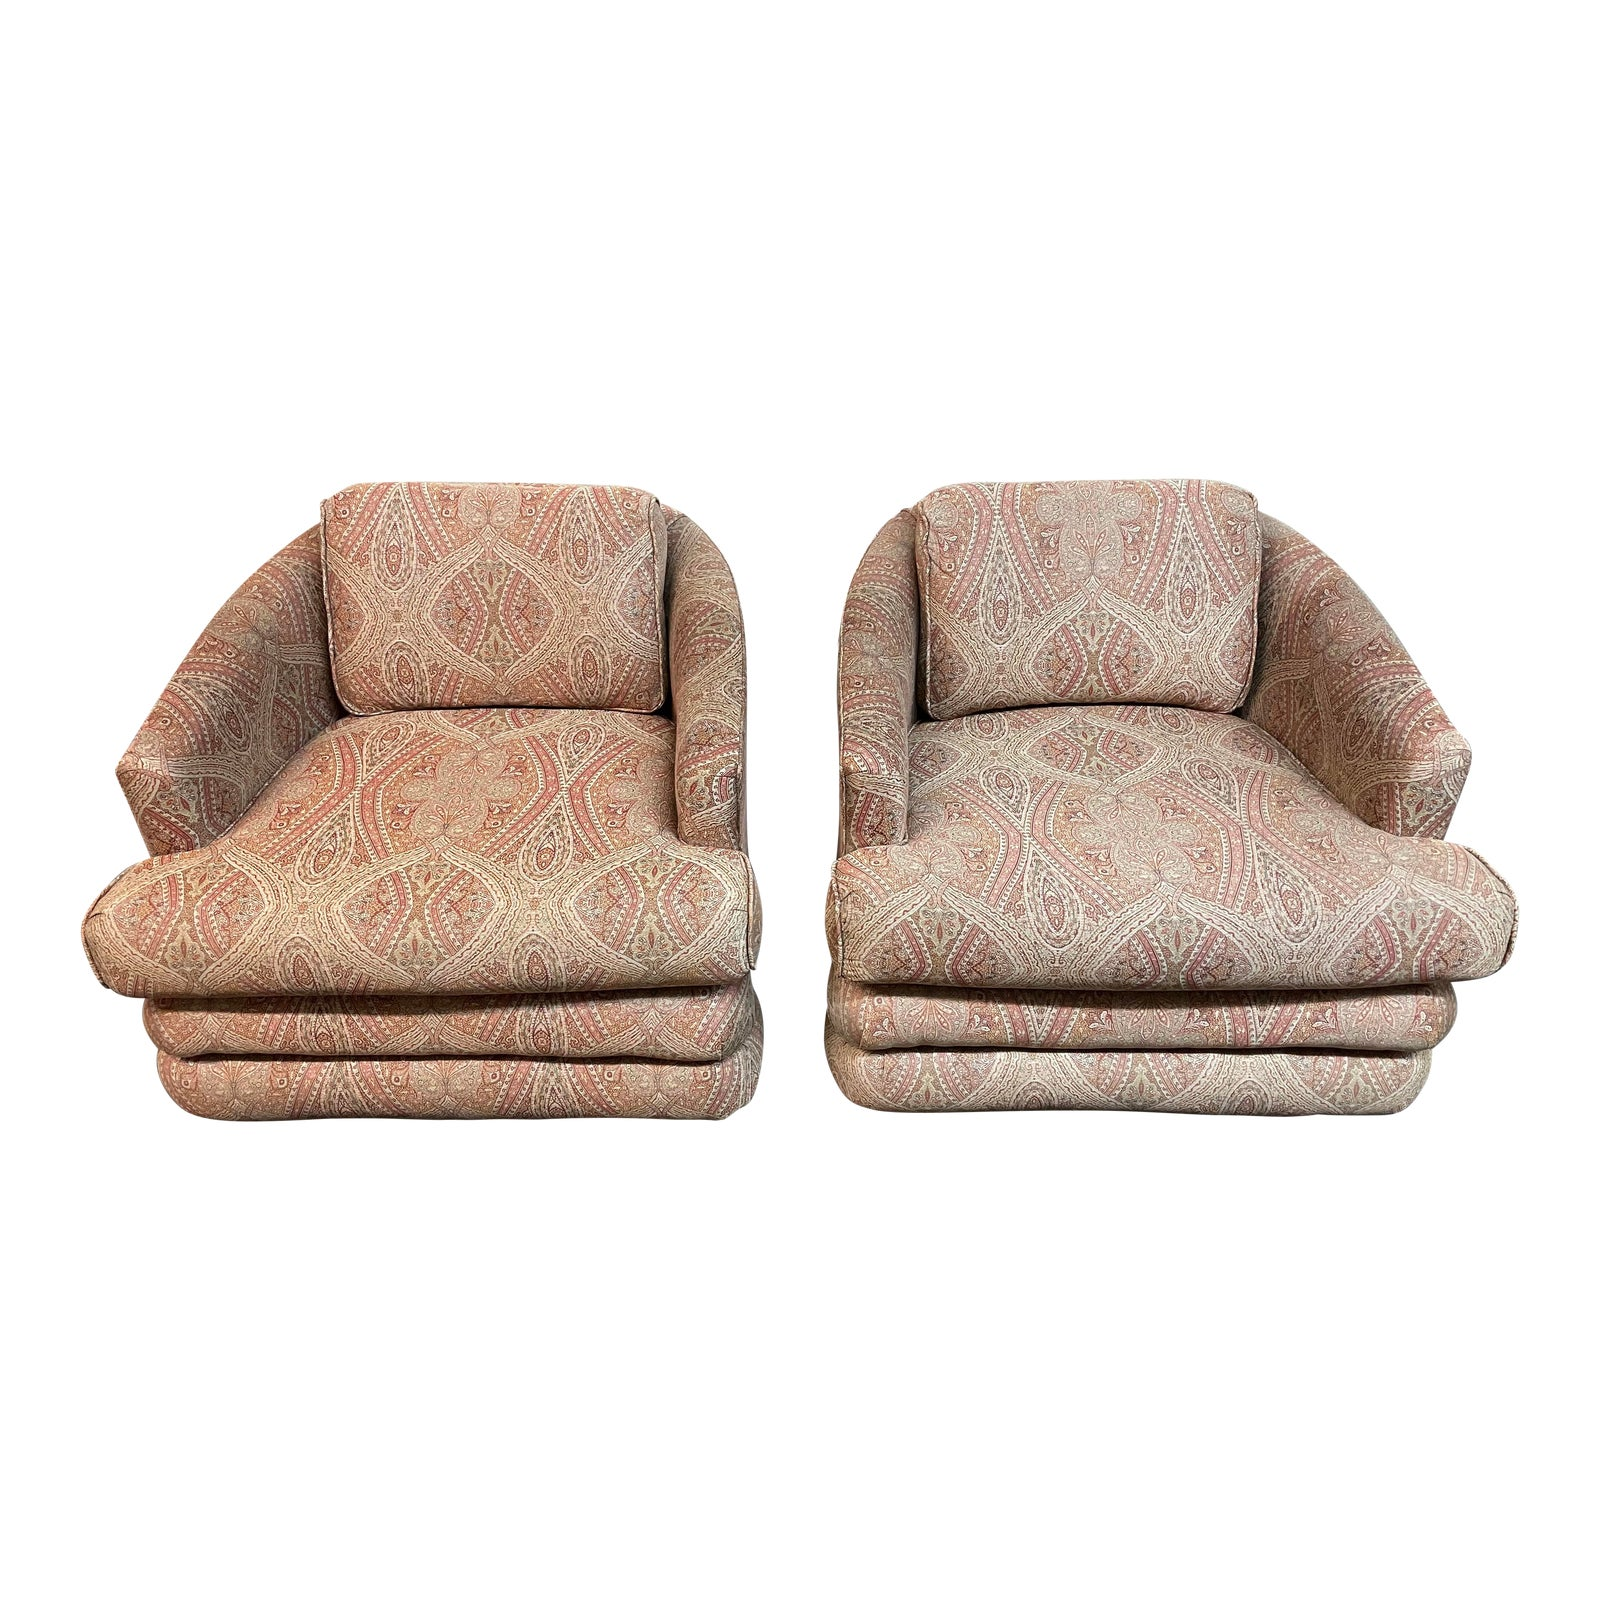 Laura Ashley Etro Upholstered Barrel Chairs A Pair Design Plus Gallery